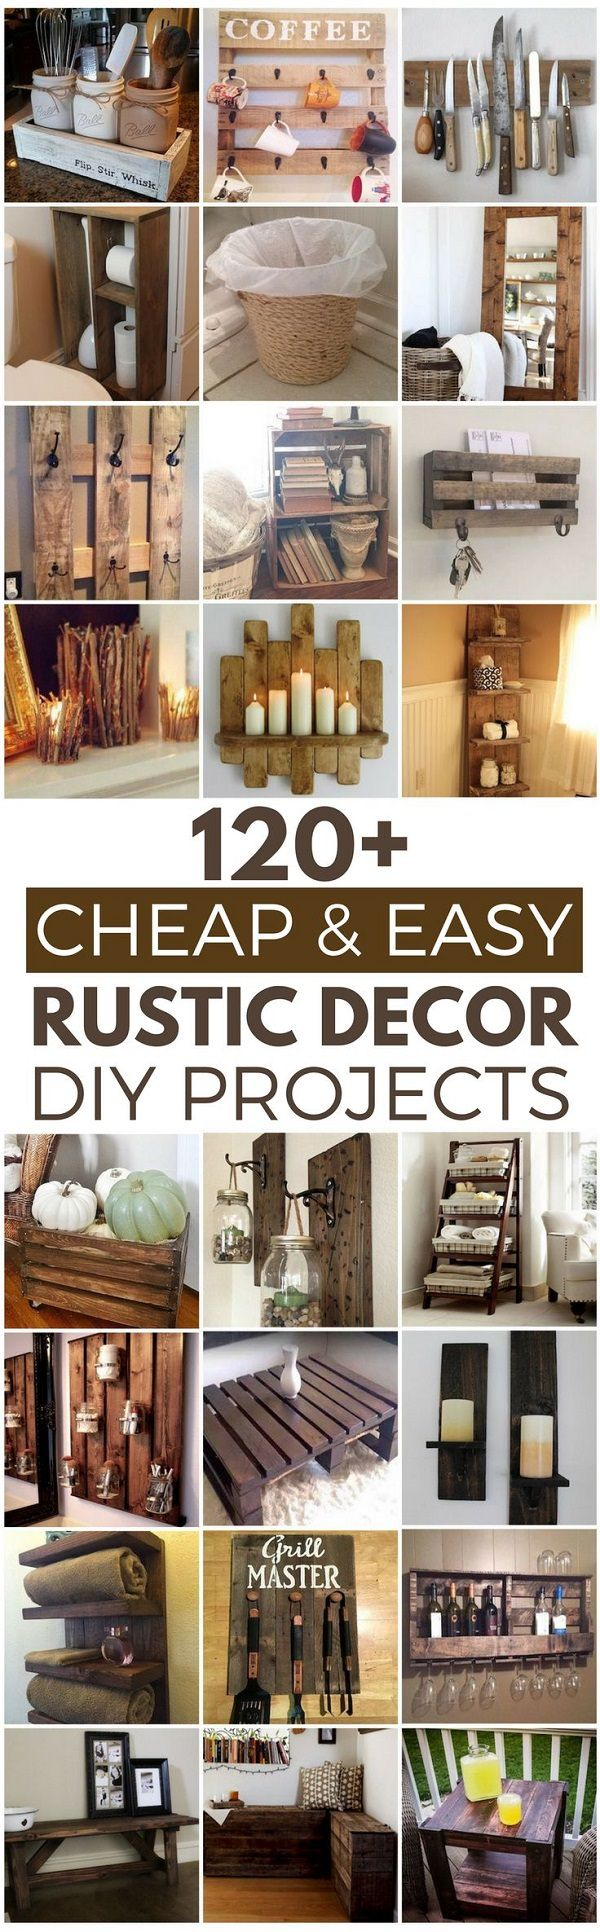 Best 20 Rustic home decorating ideas on Pinterest Diy